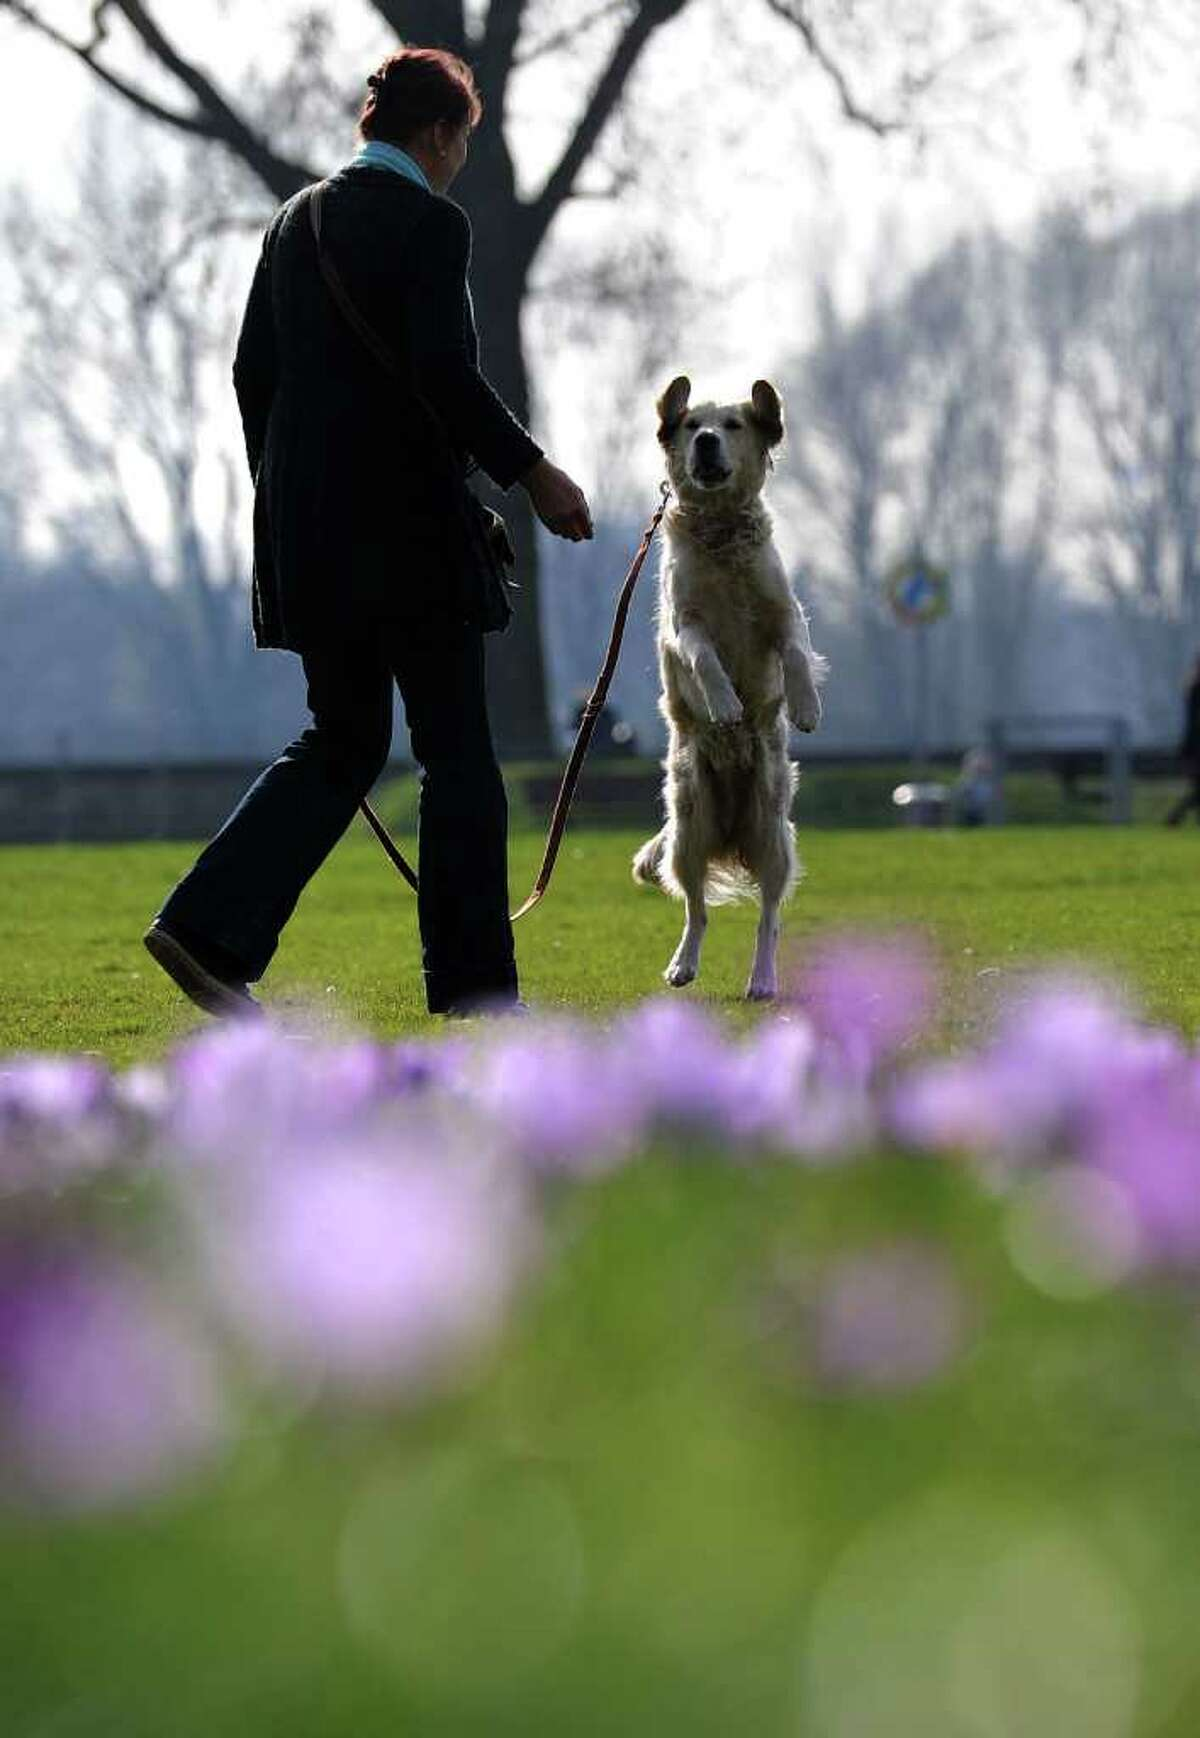 A woman walks her dog in a park where hundreds of crocus flowers bloom in the warm sunny weather in the western city of Duesseldorf as temperatures grew up to 15 degrees celsius on the first day of spring.